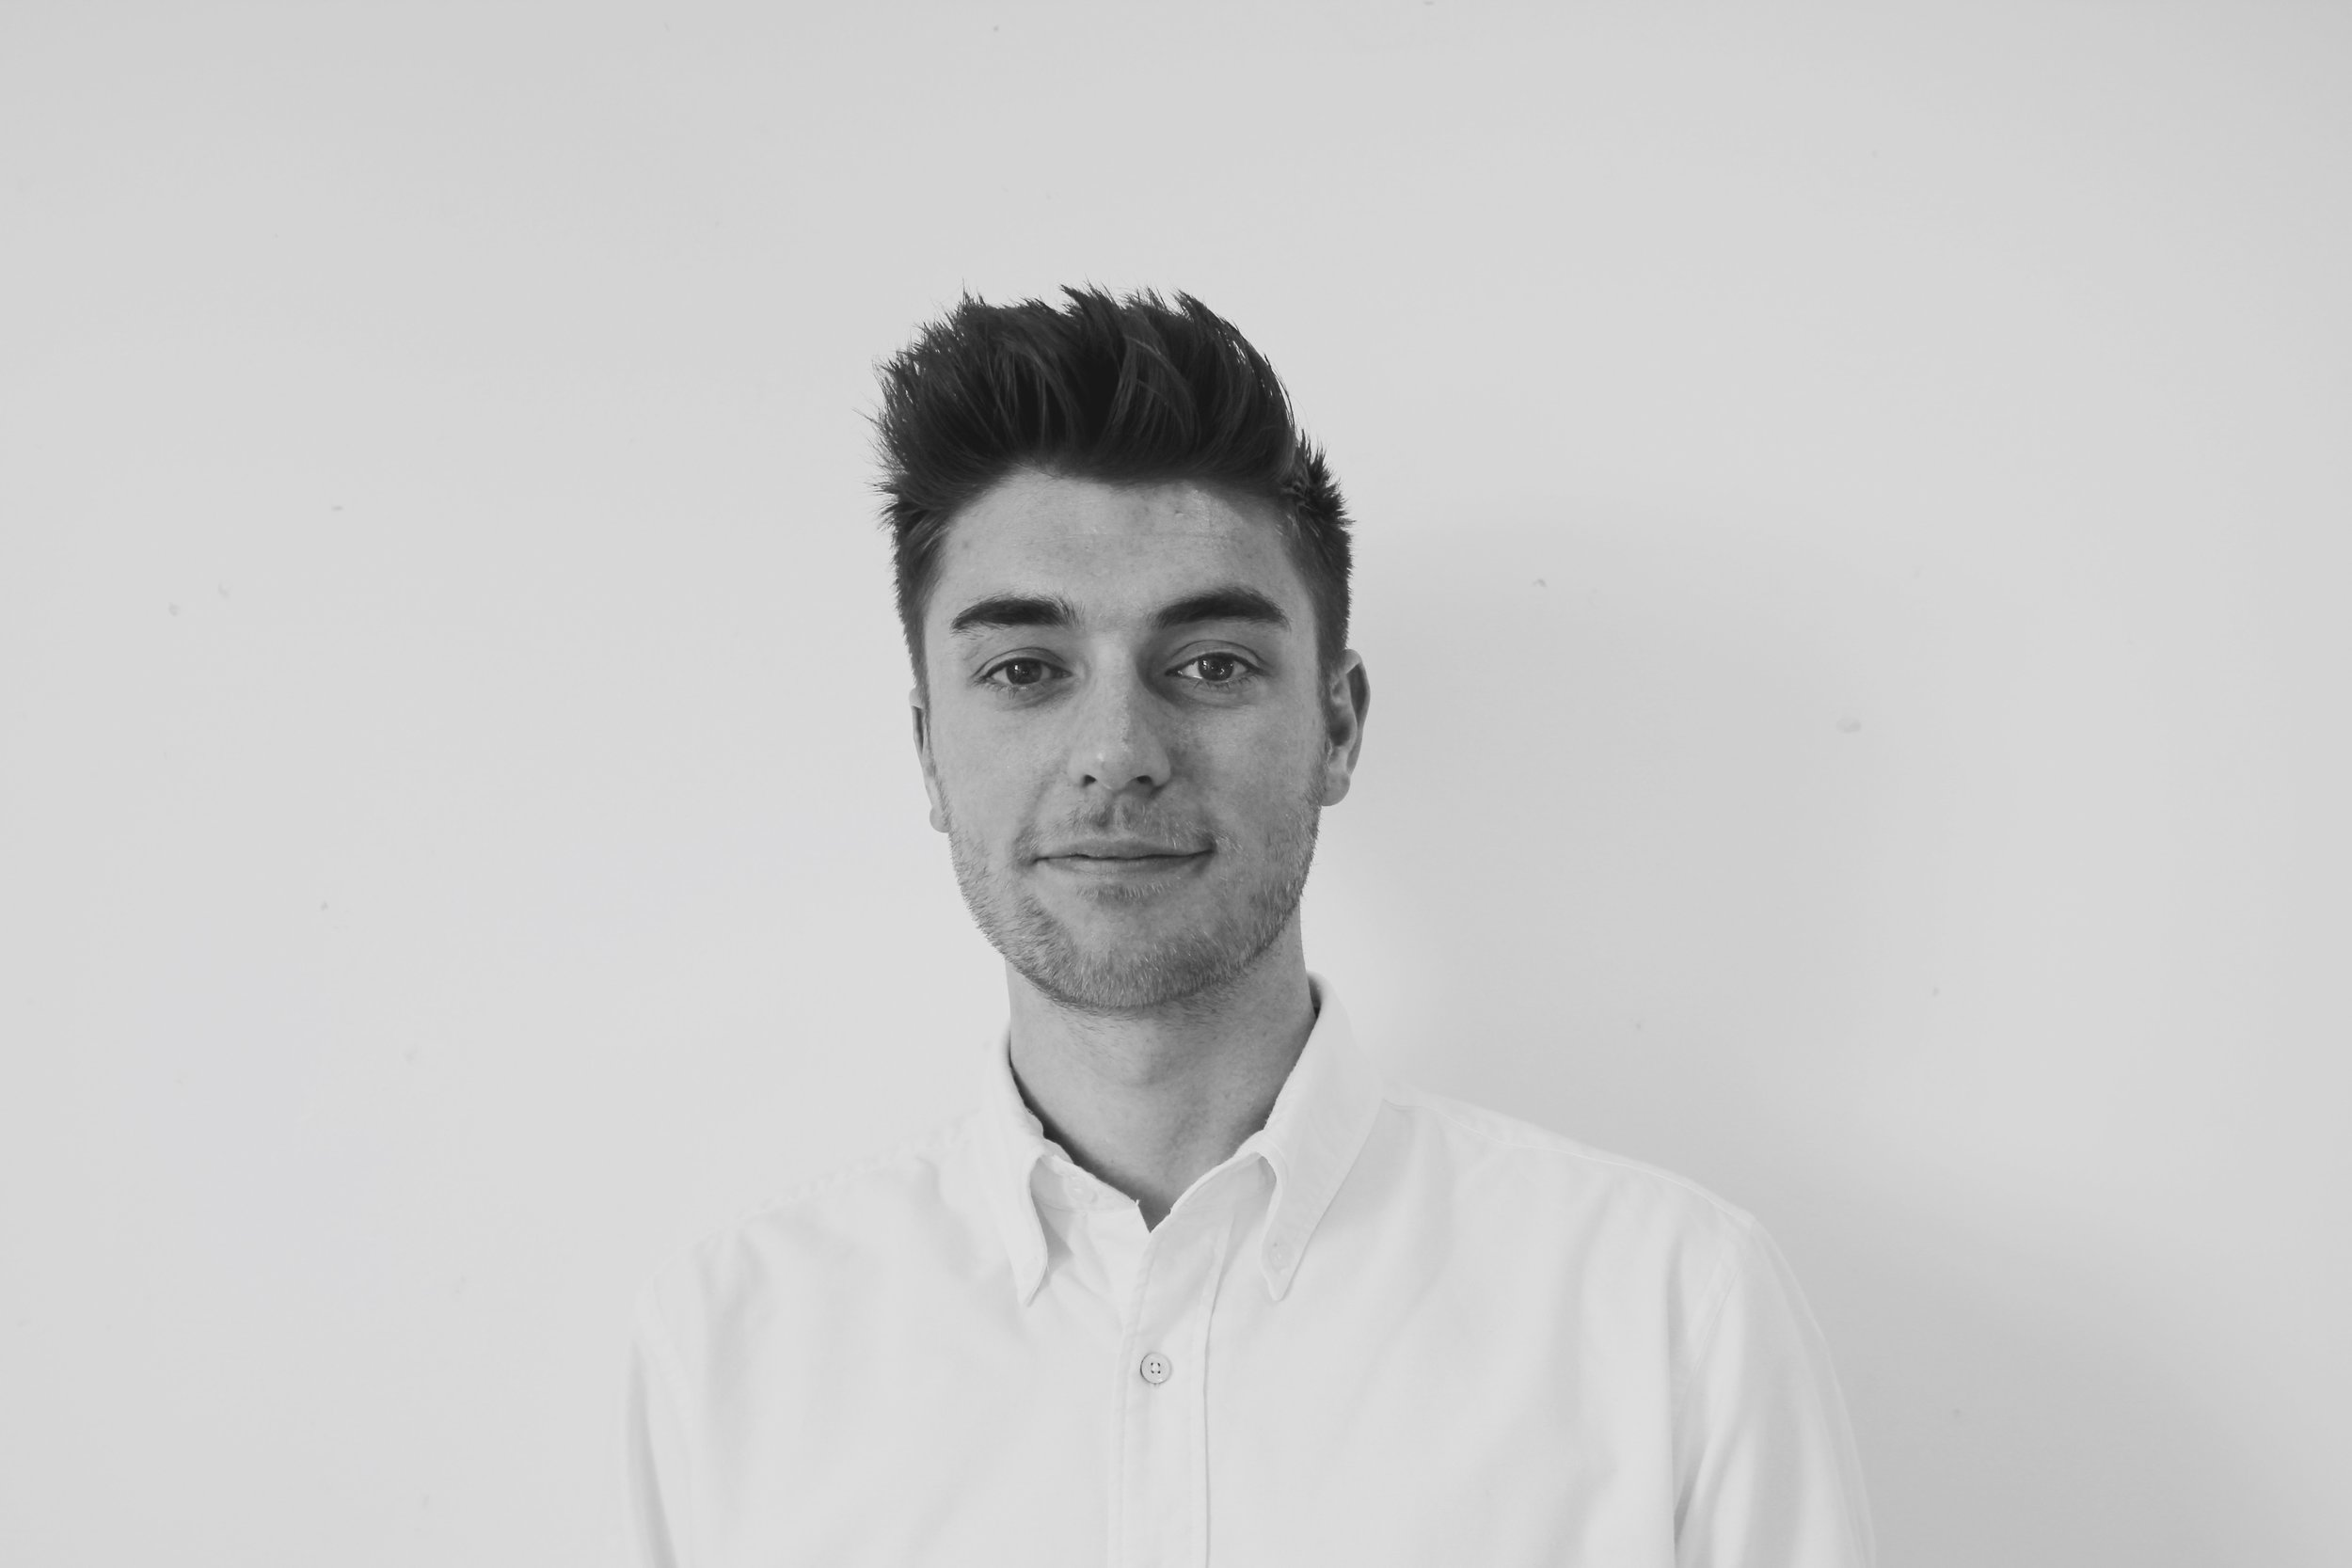 I'm a Design Strategy Lead, originally from Scotland - living in London. -